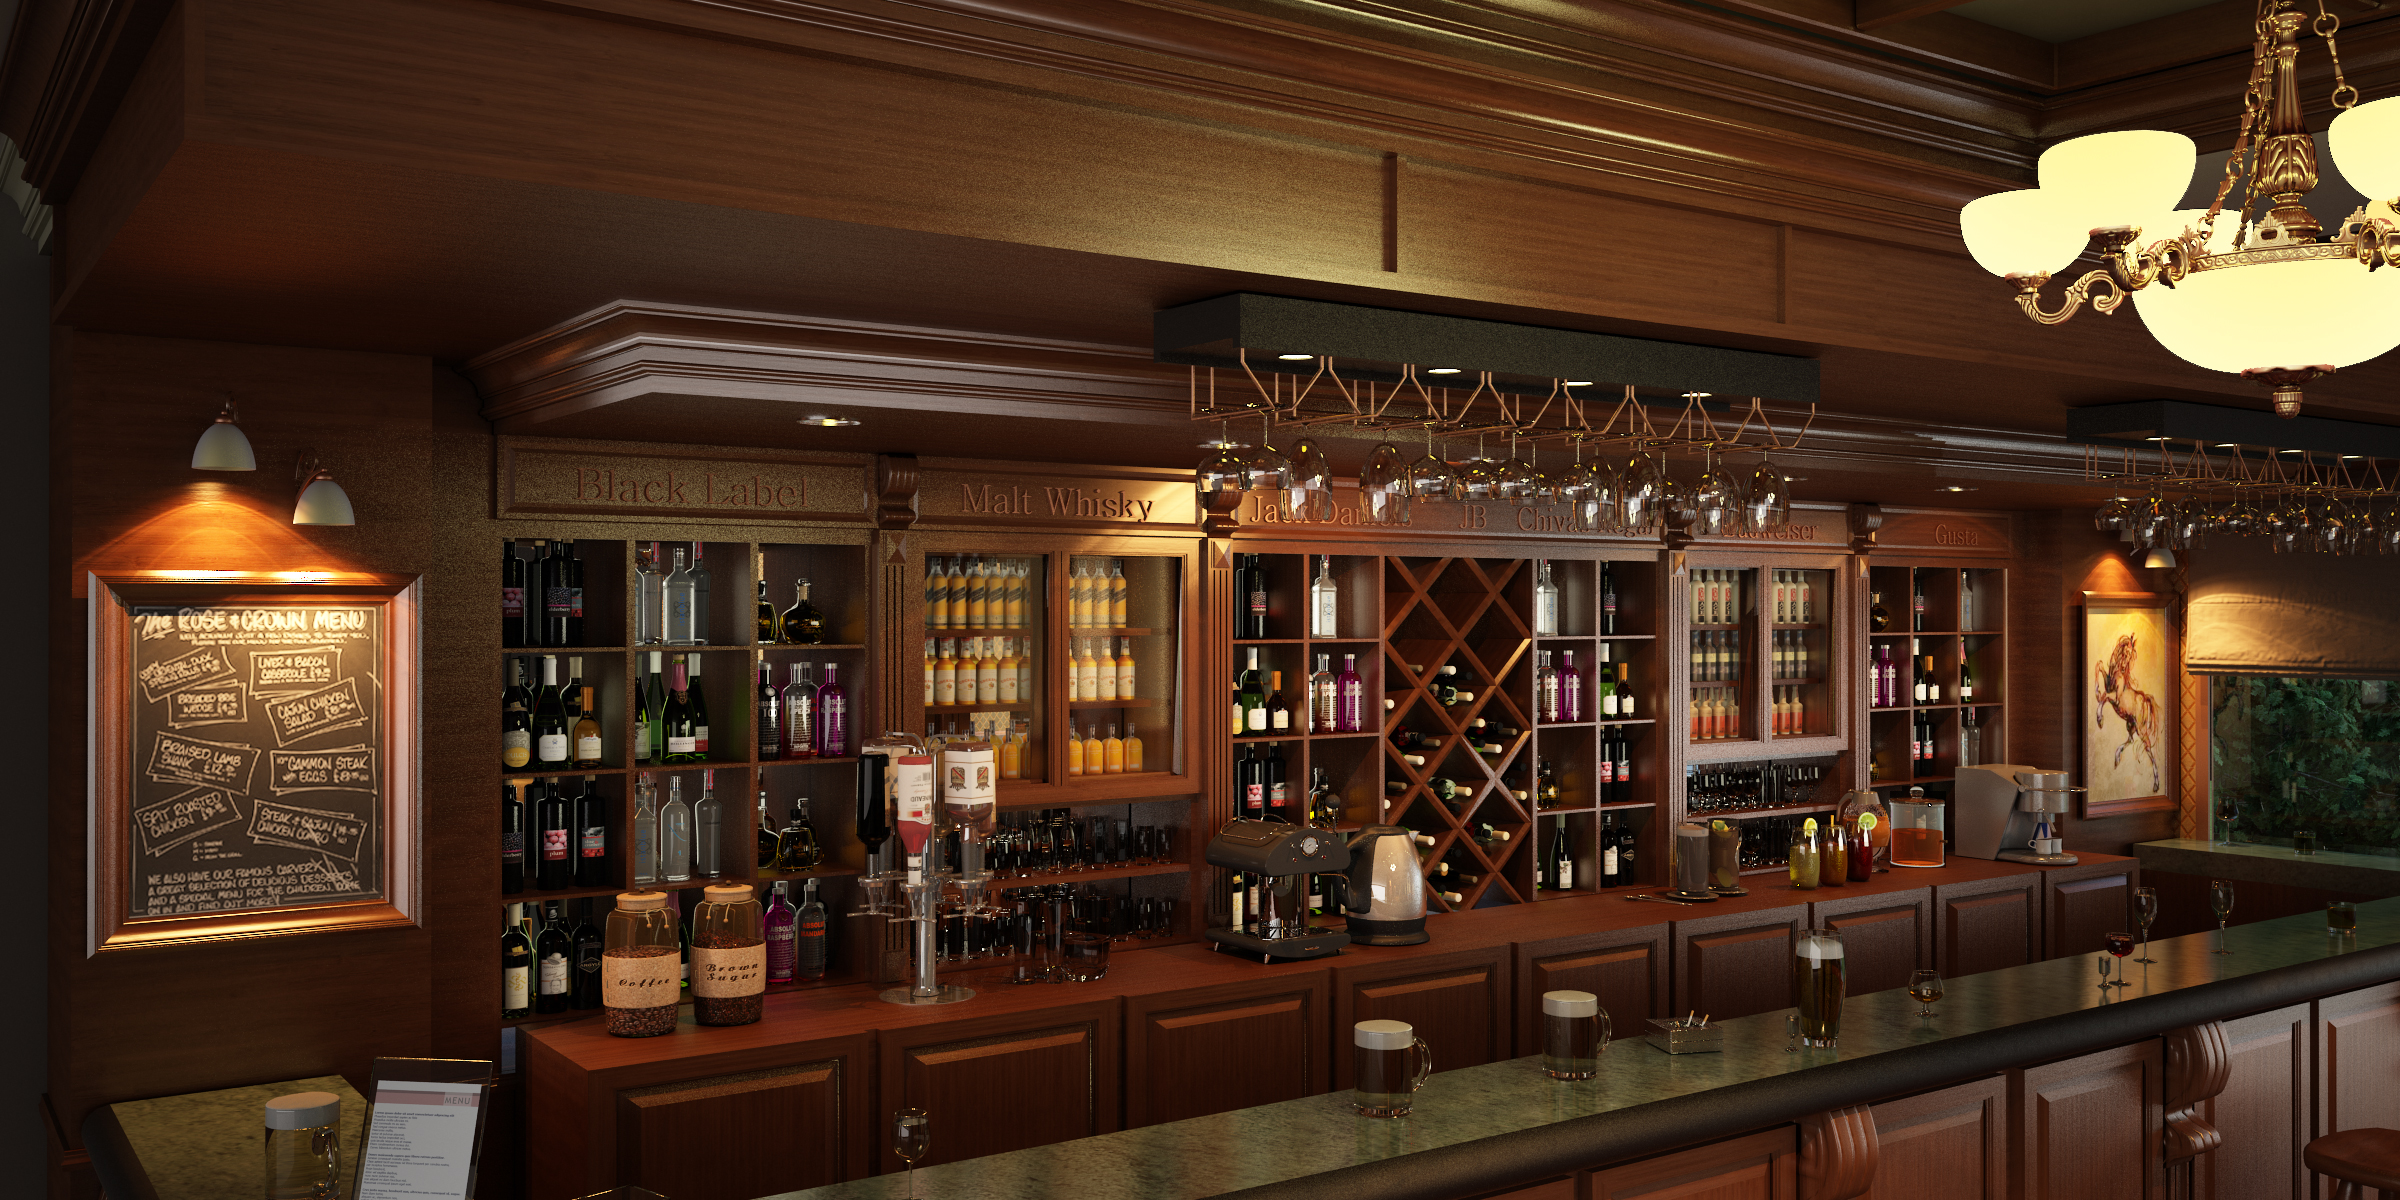 Irish bar 02 by murataral on deviantart - Pictures of bars ...